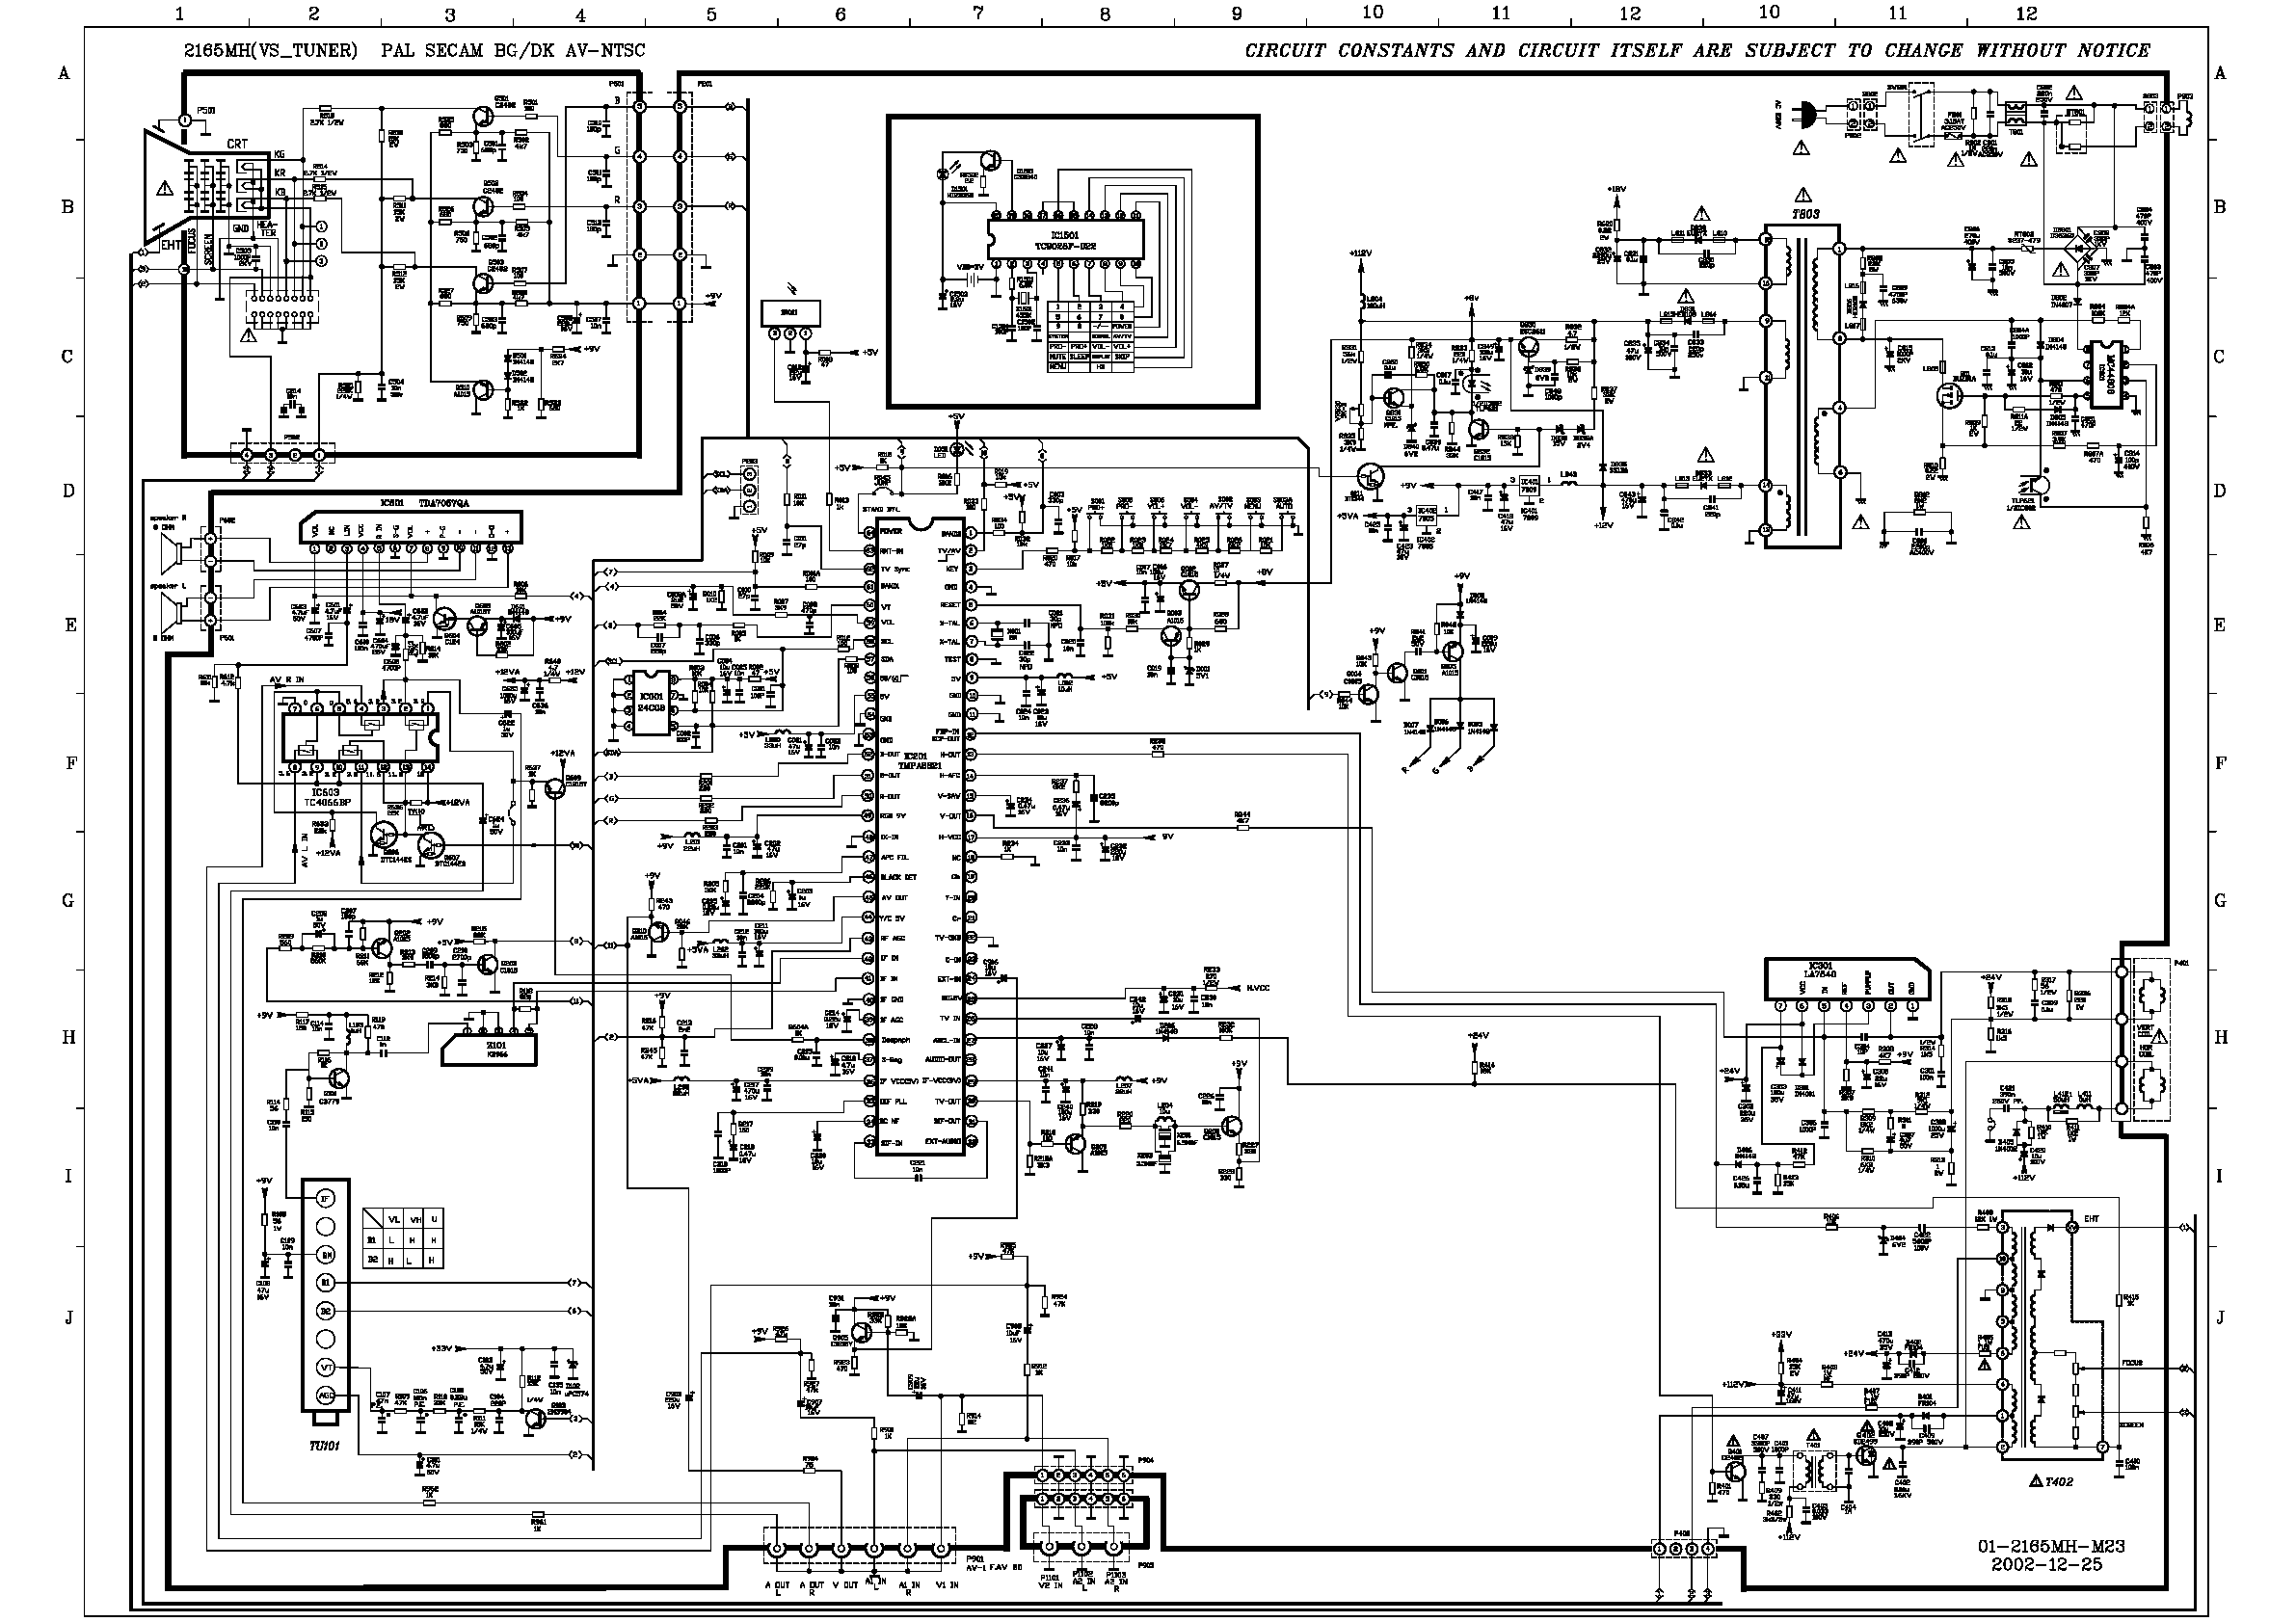 ae wiring diagram wiring diagrams wiring diagrams clipsal wiring wiring diagram pal the wiring diagram toshiba wiring diagram toshiba printable wiring diagrams wiring diagram